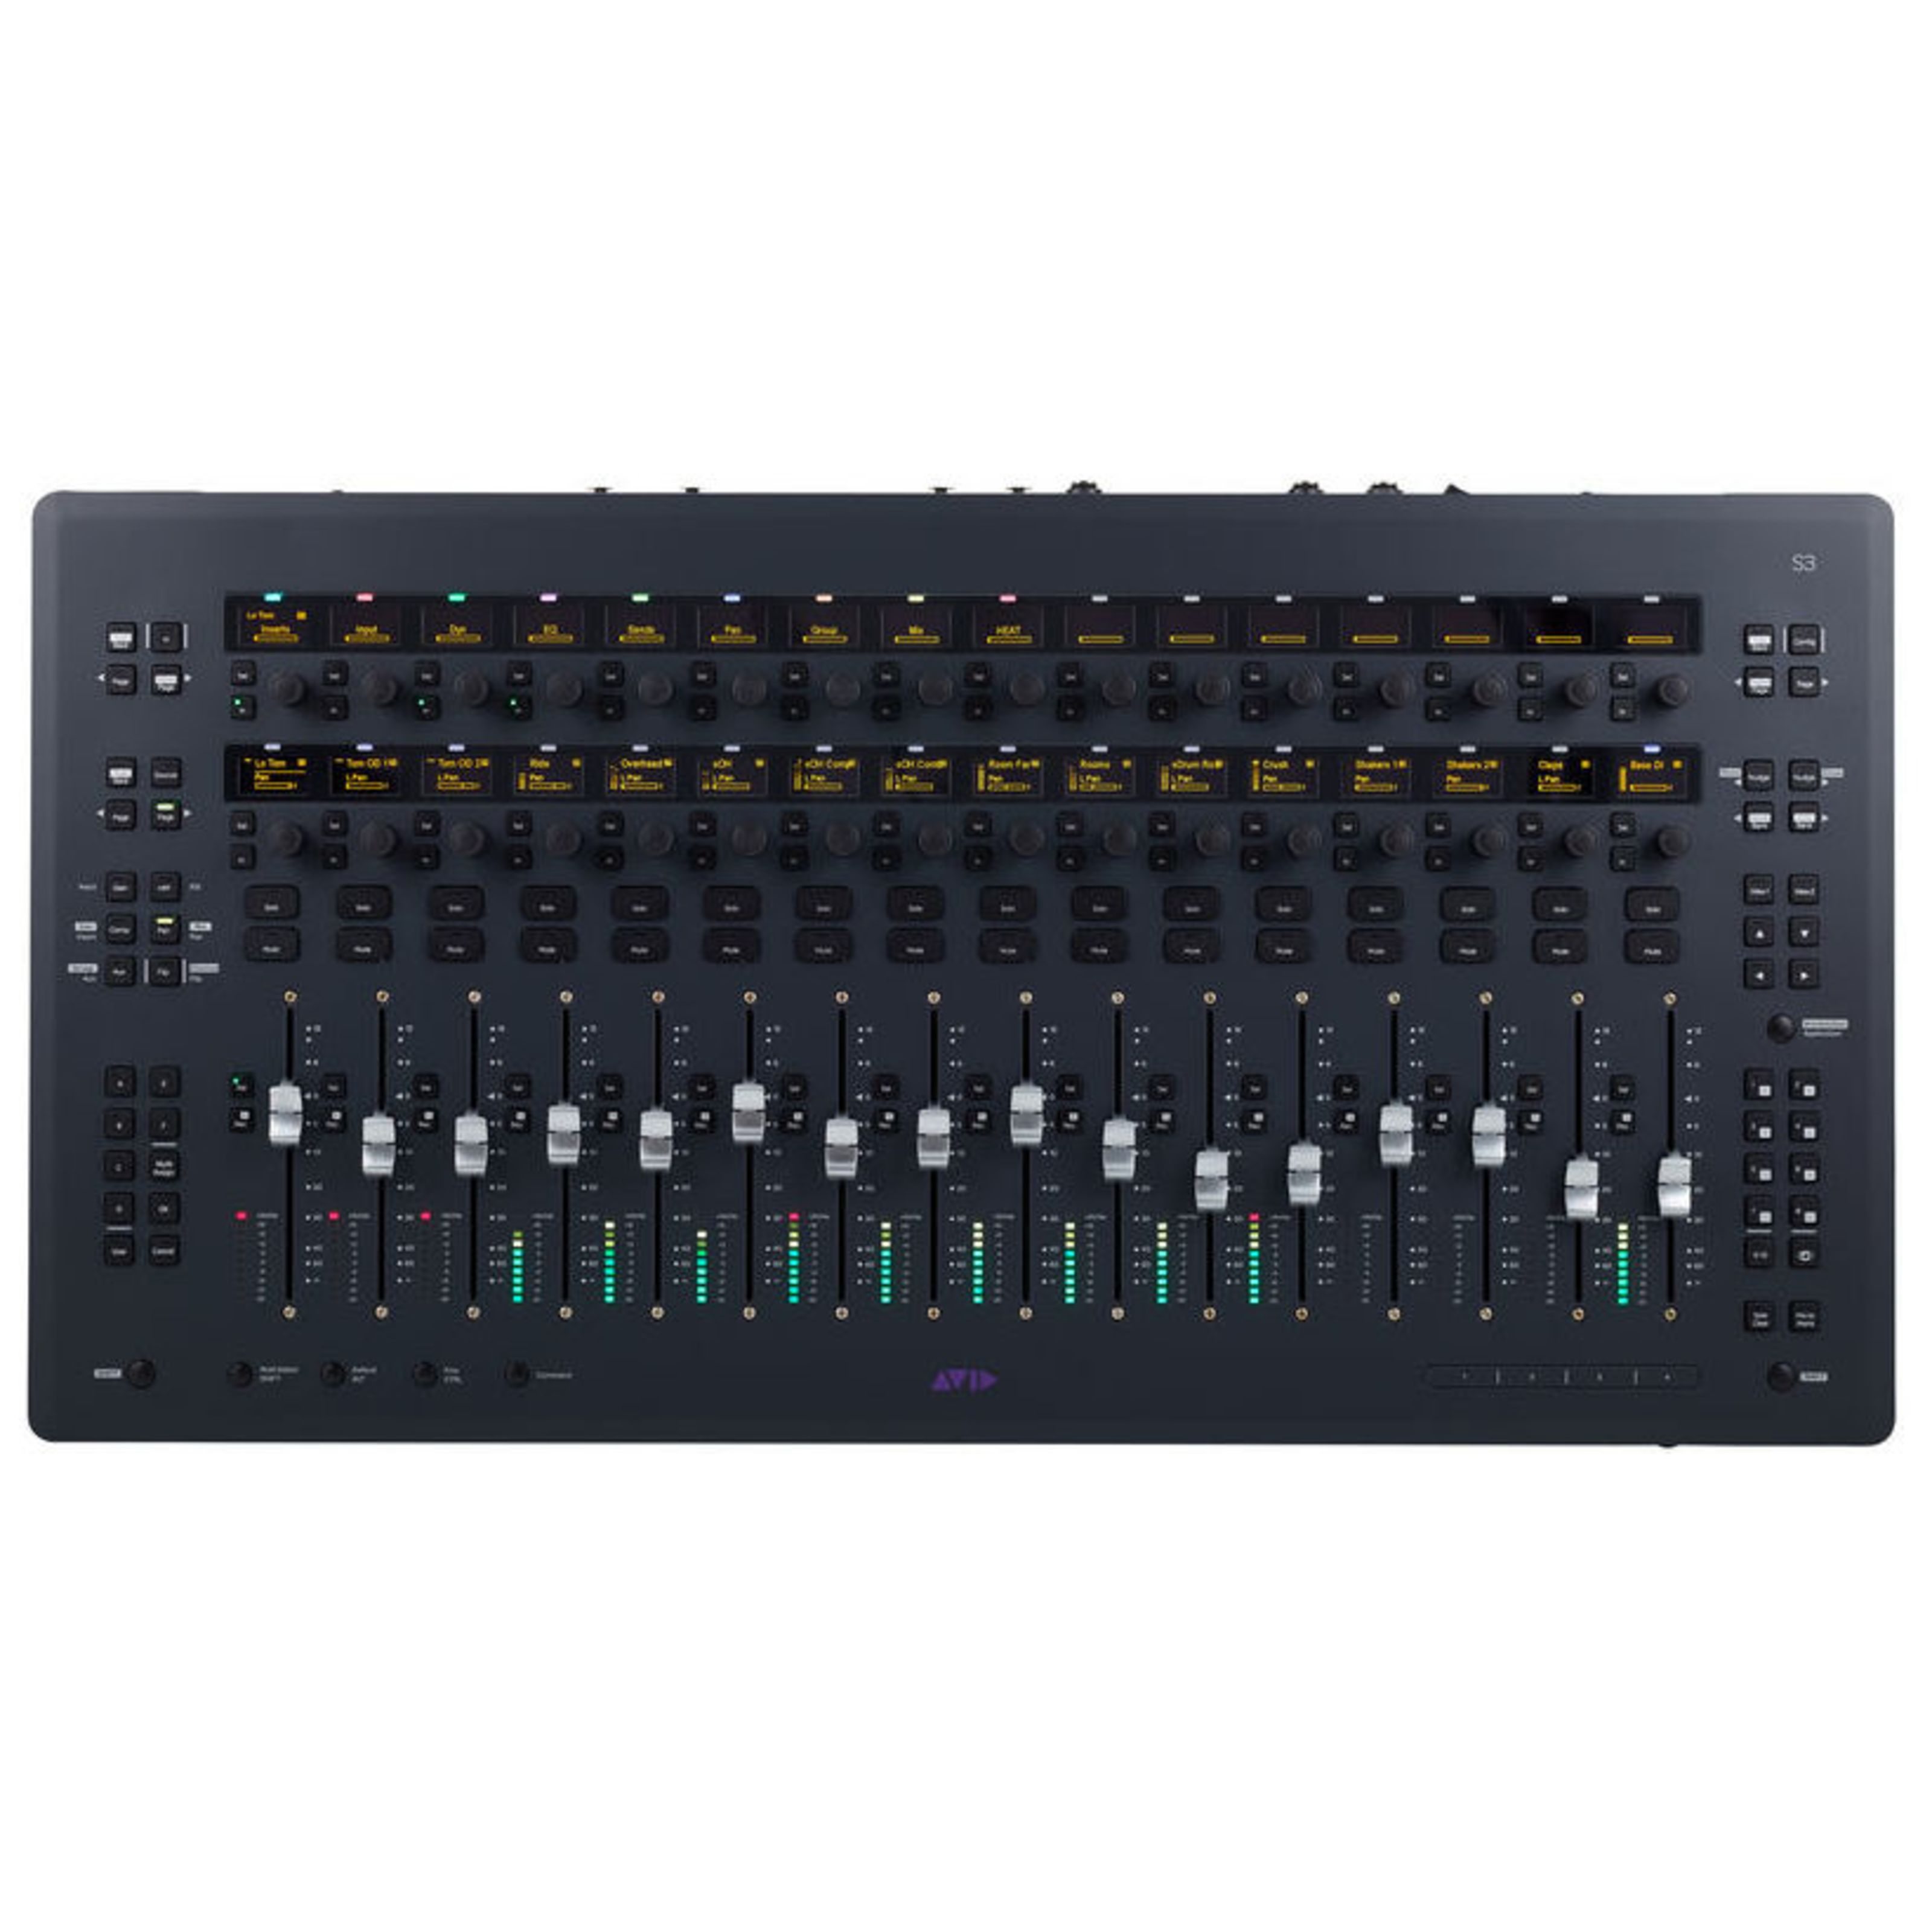 Avid - Pro Tools S3 Control Surface AVCS3